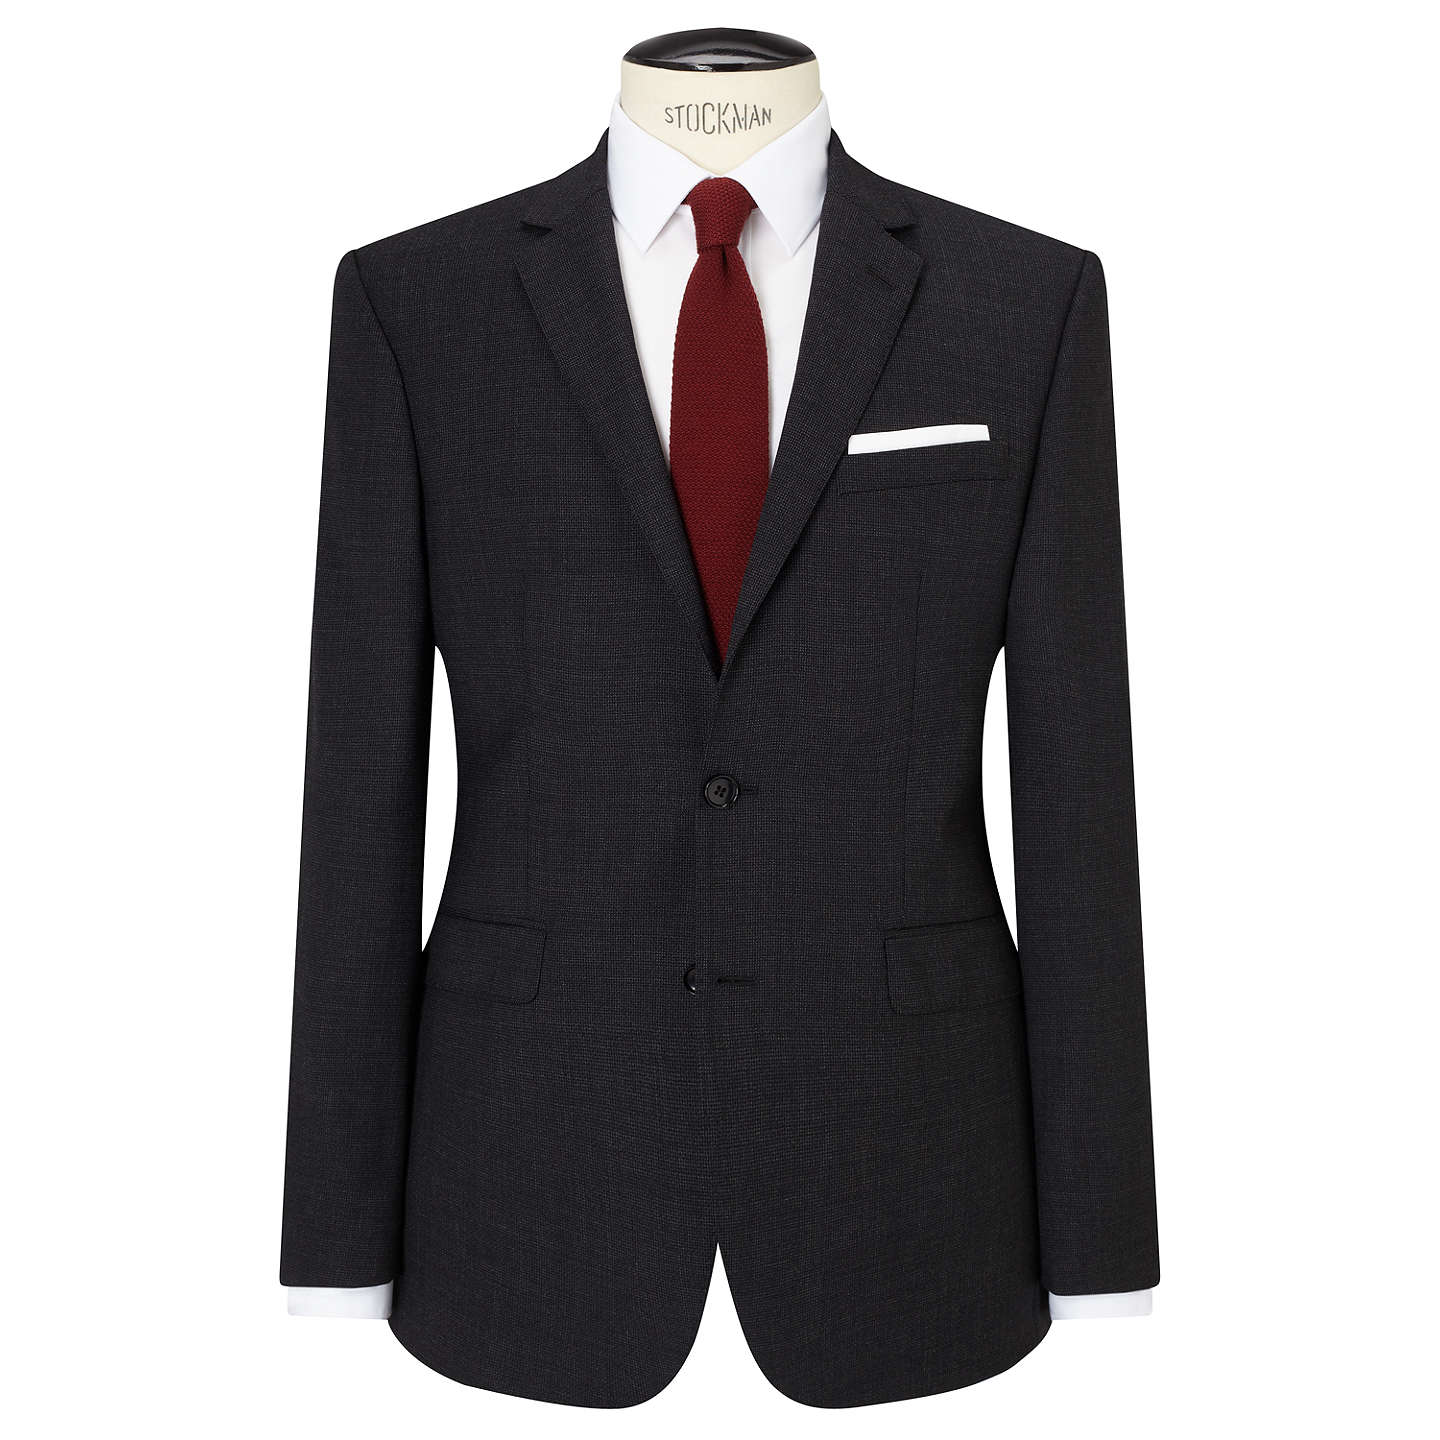 BuyJohn Lewis Textured Super 100s Wool Tailored Suit Jacket, Charcoal, 46R Online at johnlewis.com